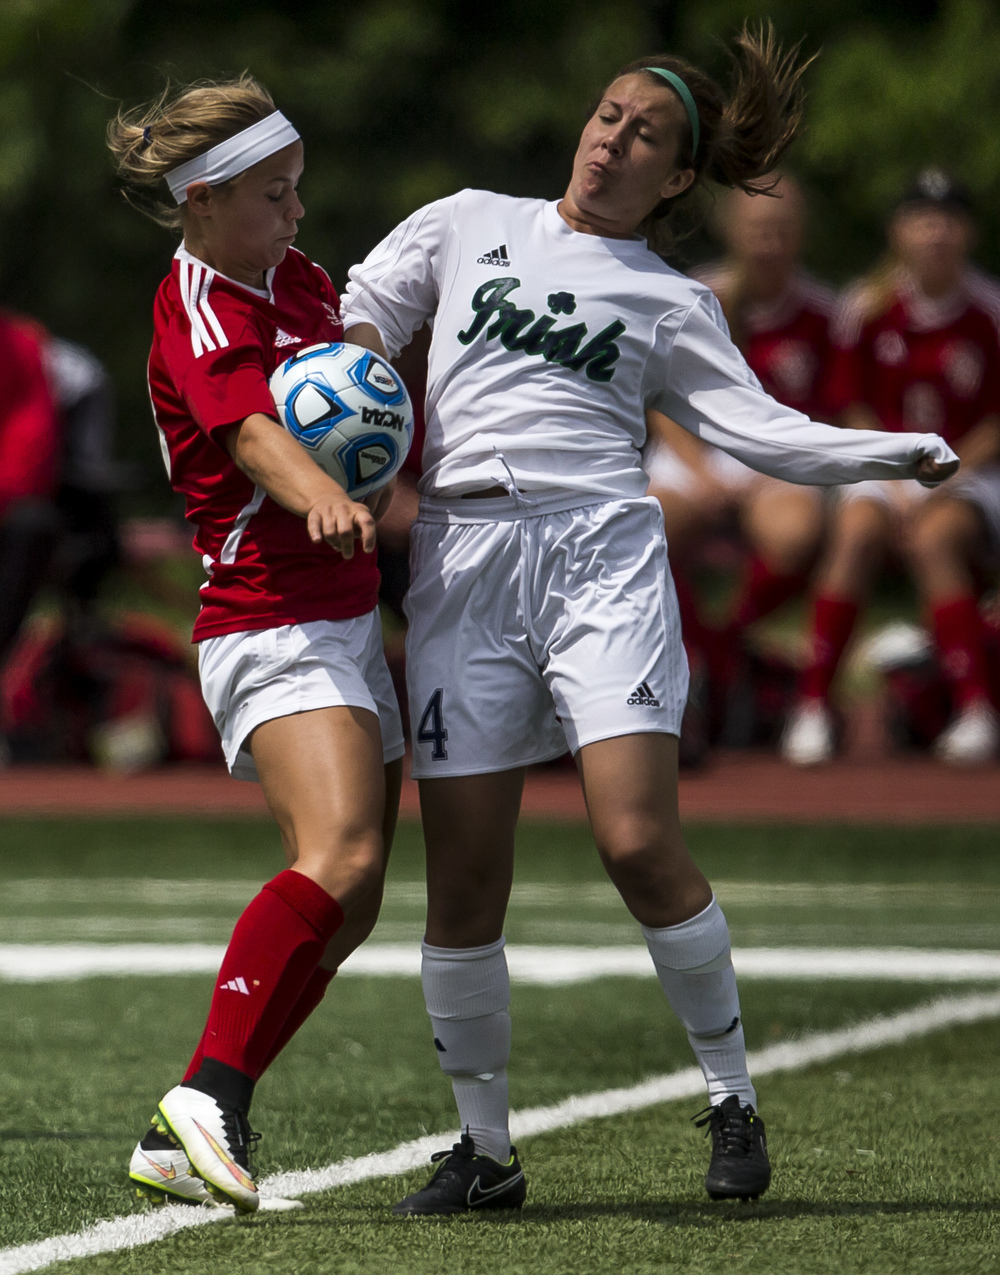 Glenwood's Kelly Graves (10) battles for possession of the ball against Peoria Notre Dame's Kristen Slomba (9) in the first half during the IHSA Class 2A Girls State Soccer Semifinals at North Central College, Friday, June 5, 2015, in Naperville, Ill. Justin L. Fowler/The State Journal-Register